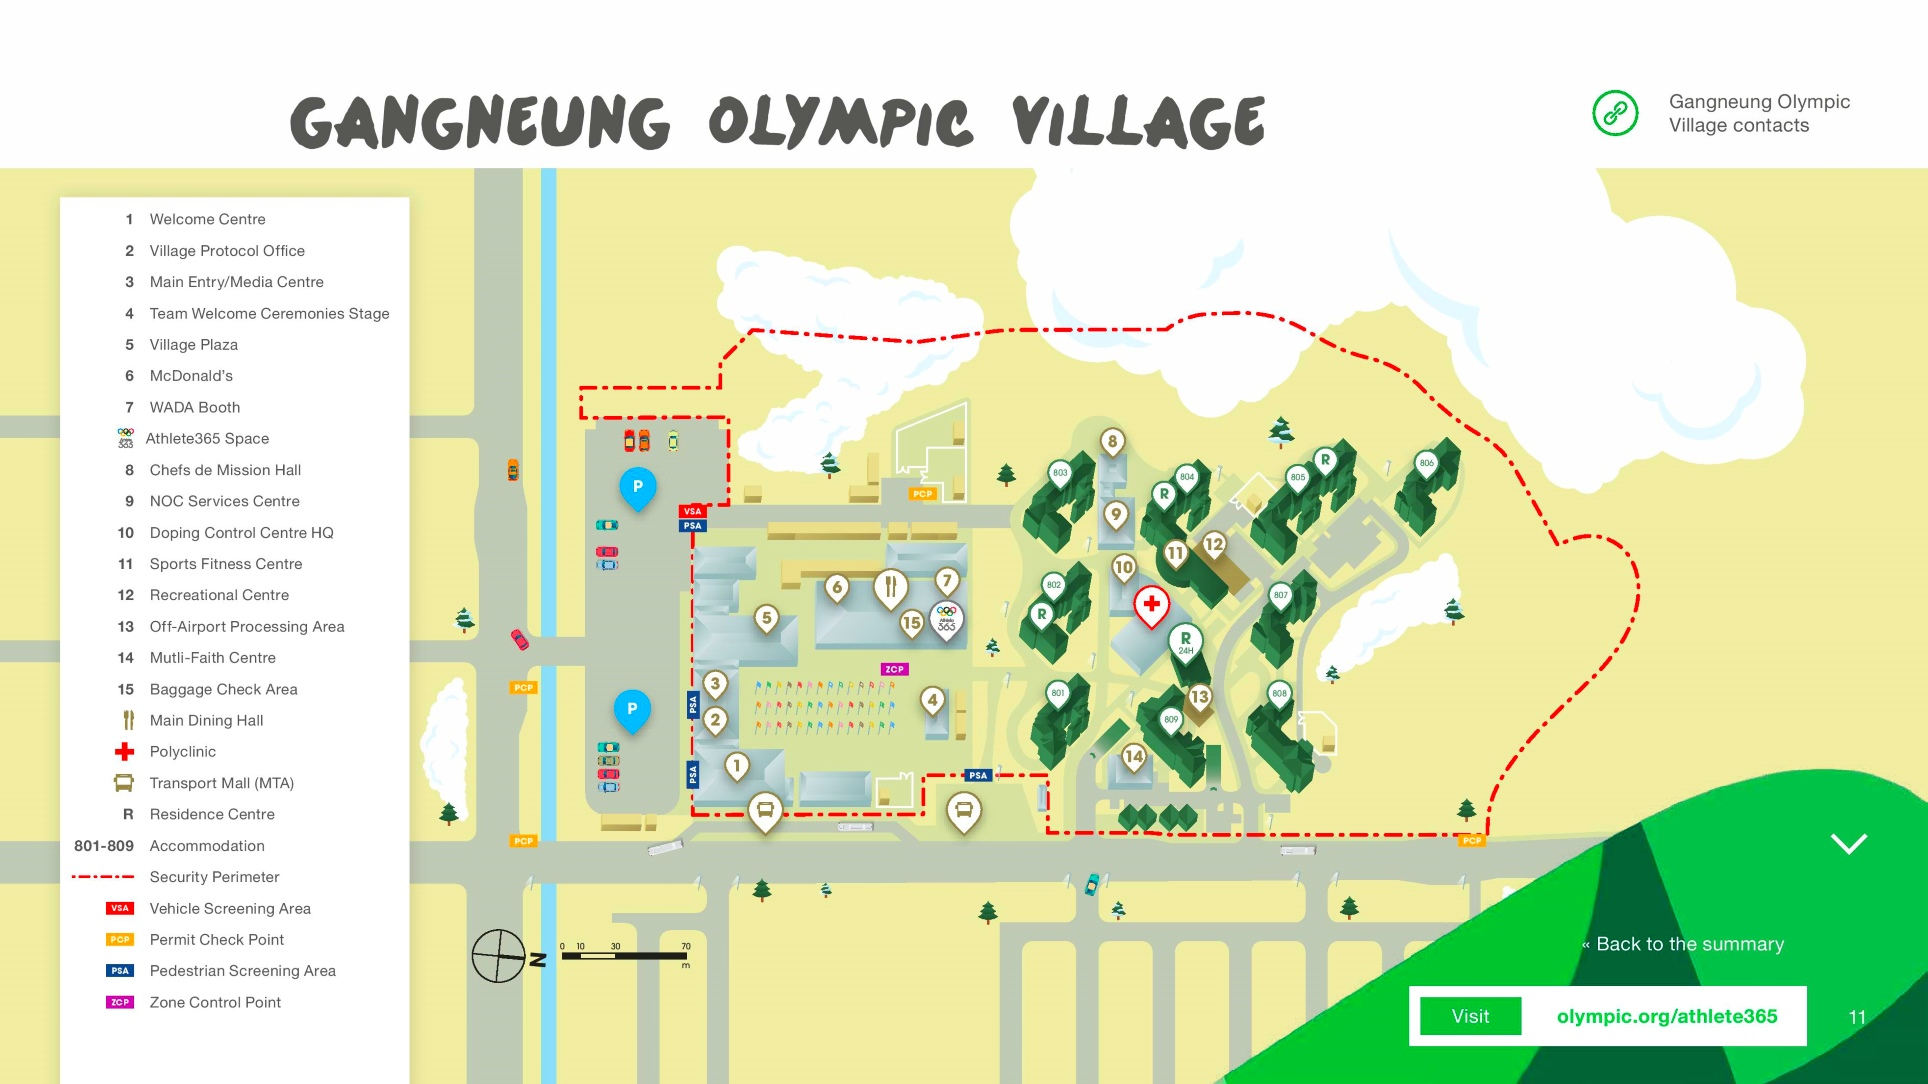 Gangneung Olympic Village map